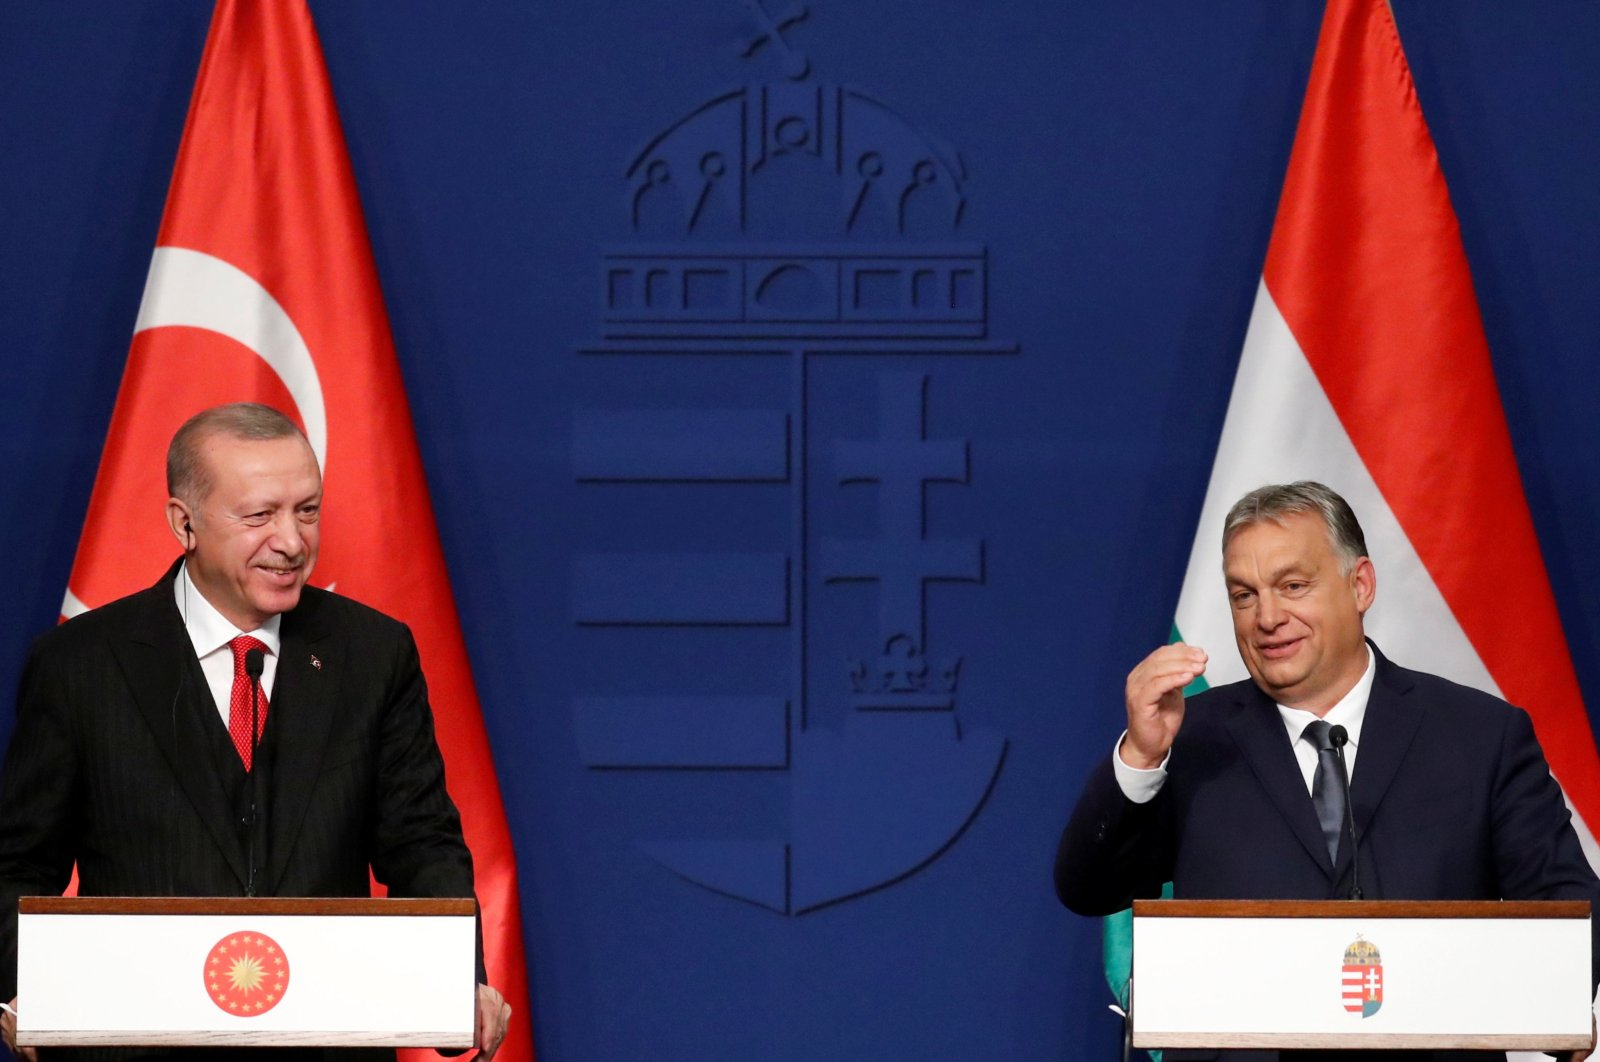 President Recep Tayyip Erdoğan (L) and Hungarian Prime Minister Viktor Orban hold a news conference in Budapest, Hungary, November 7, 2019. (REUTERS Photo)